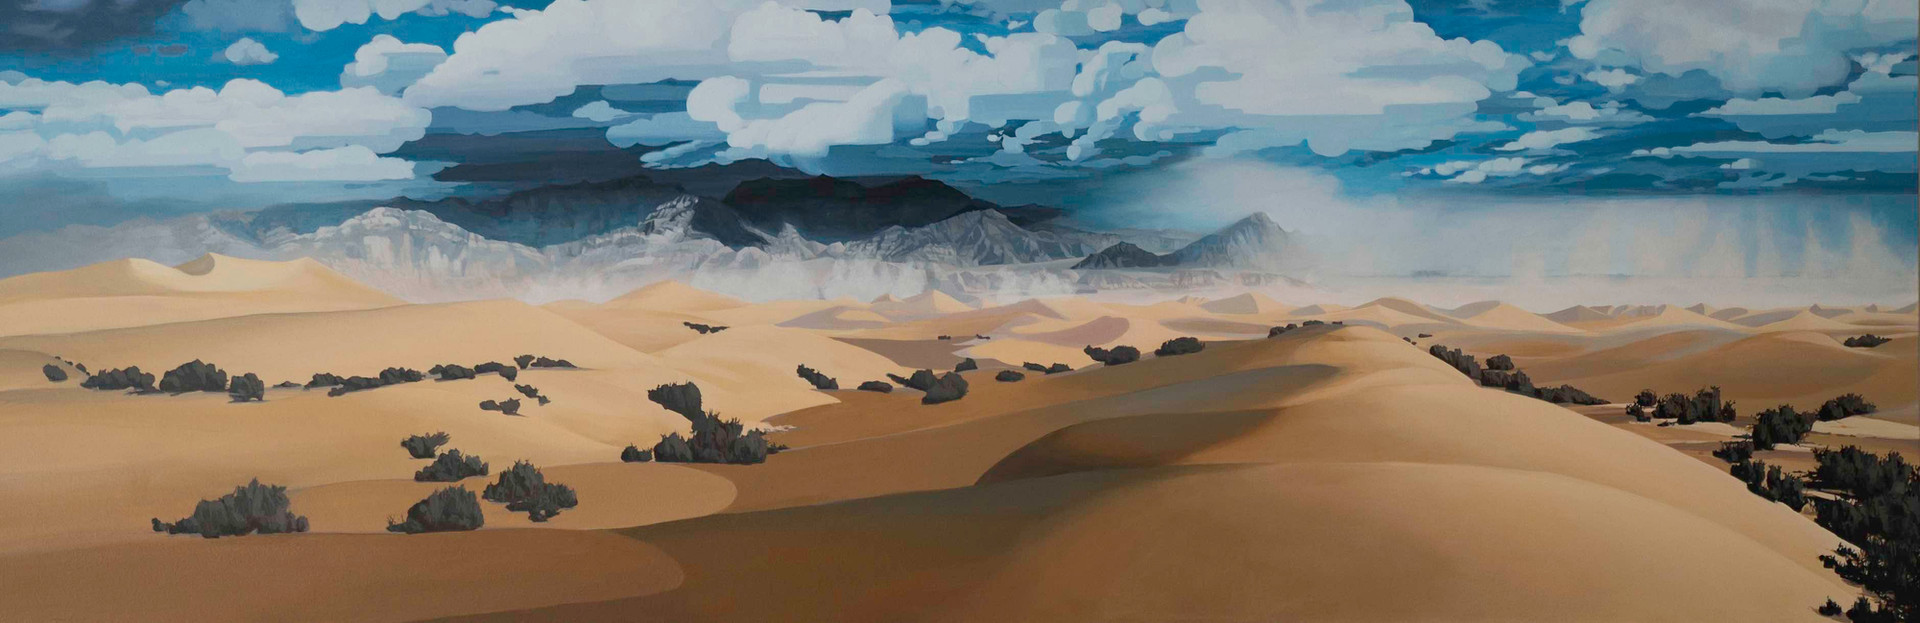 """Stovepipe Wells Dunes, Death Valley 4  24""""x72""""   acrylic on canvas  2016"""